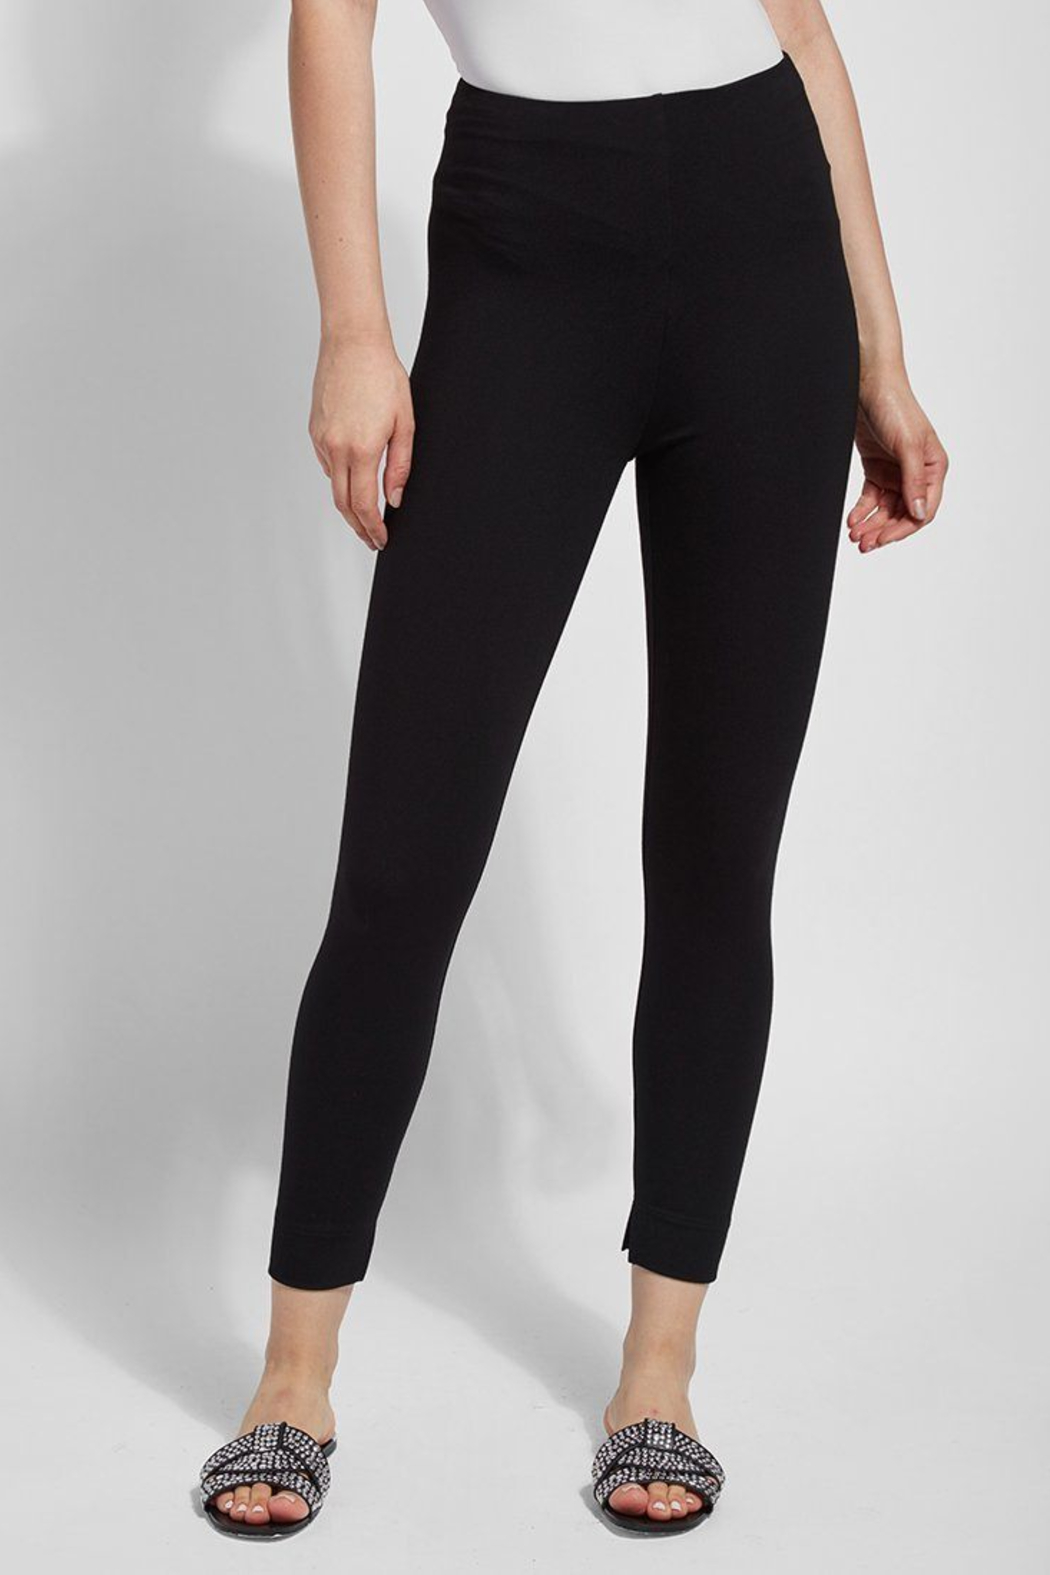 Lysse  Fennel Ankle Slit Legging - Front Full Image